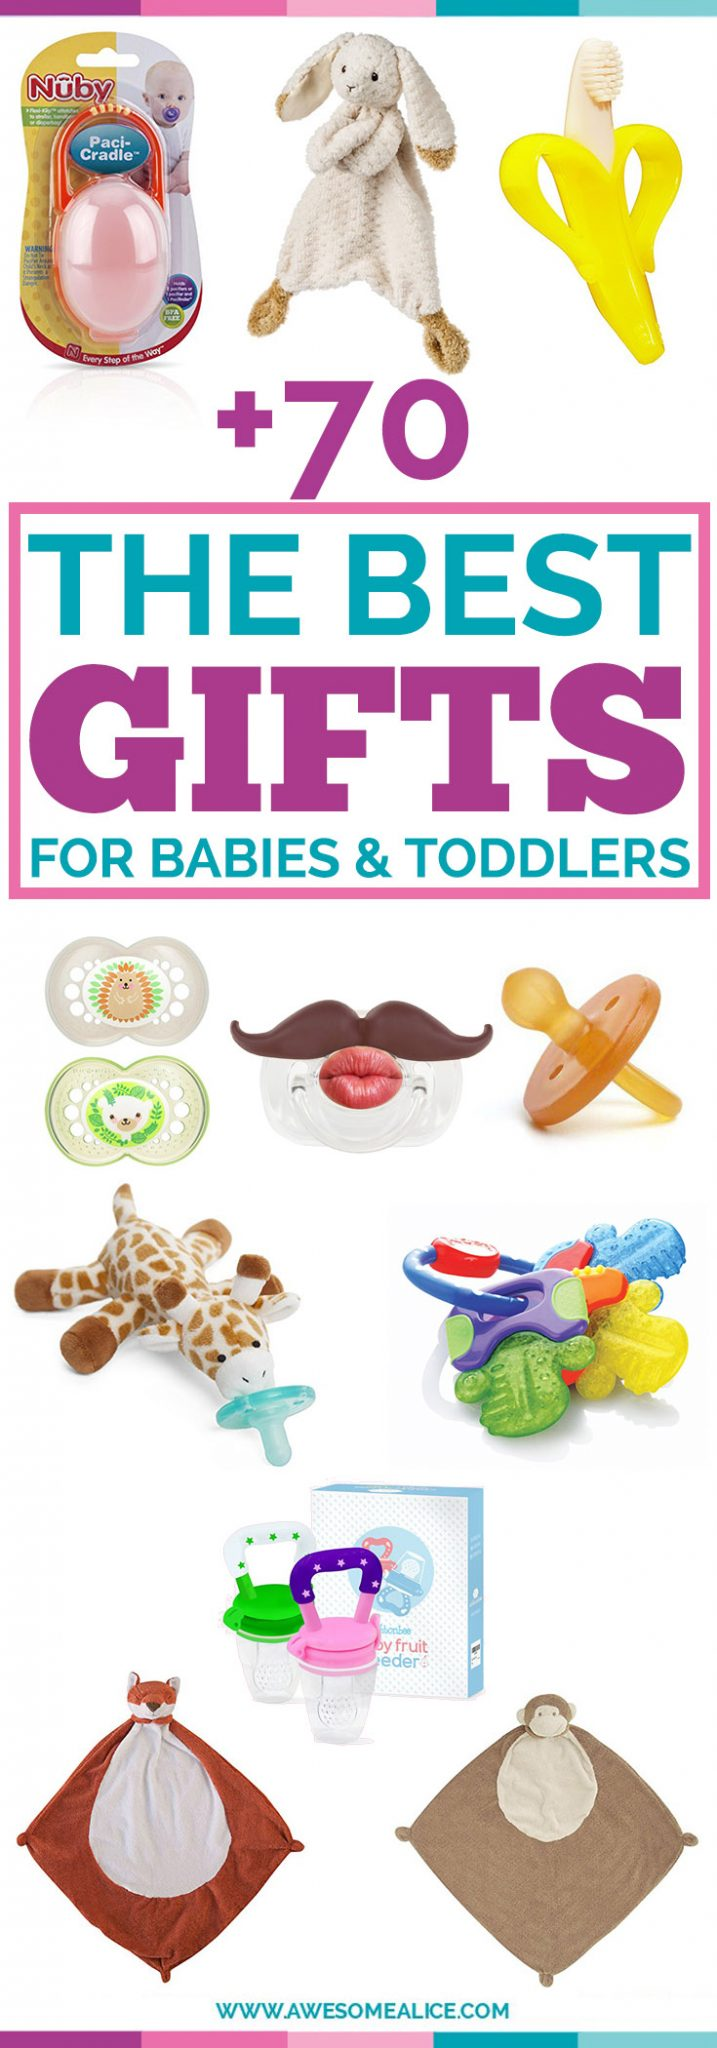 Non-Toy Gift Guide For Babies And Toddlers | Christmas Gifts For Babies | Perfect Christmas Gift For Babies | The Best Toddler Non-Toy Gifts | The Best Baby Pacifiers | Toddler Christmas Gift Guide | The Best Kids Gift Guide | Holiday Gifts For Children | #non-toy | #babies | #Christmas | www.awesomealice.com